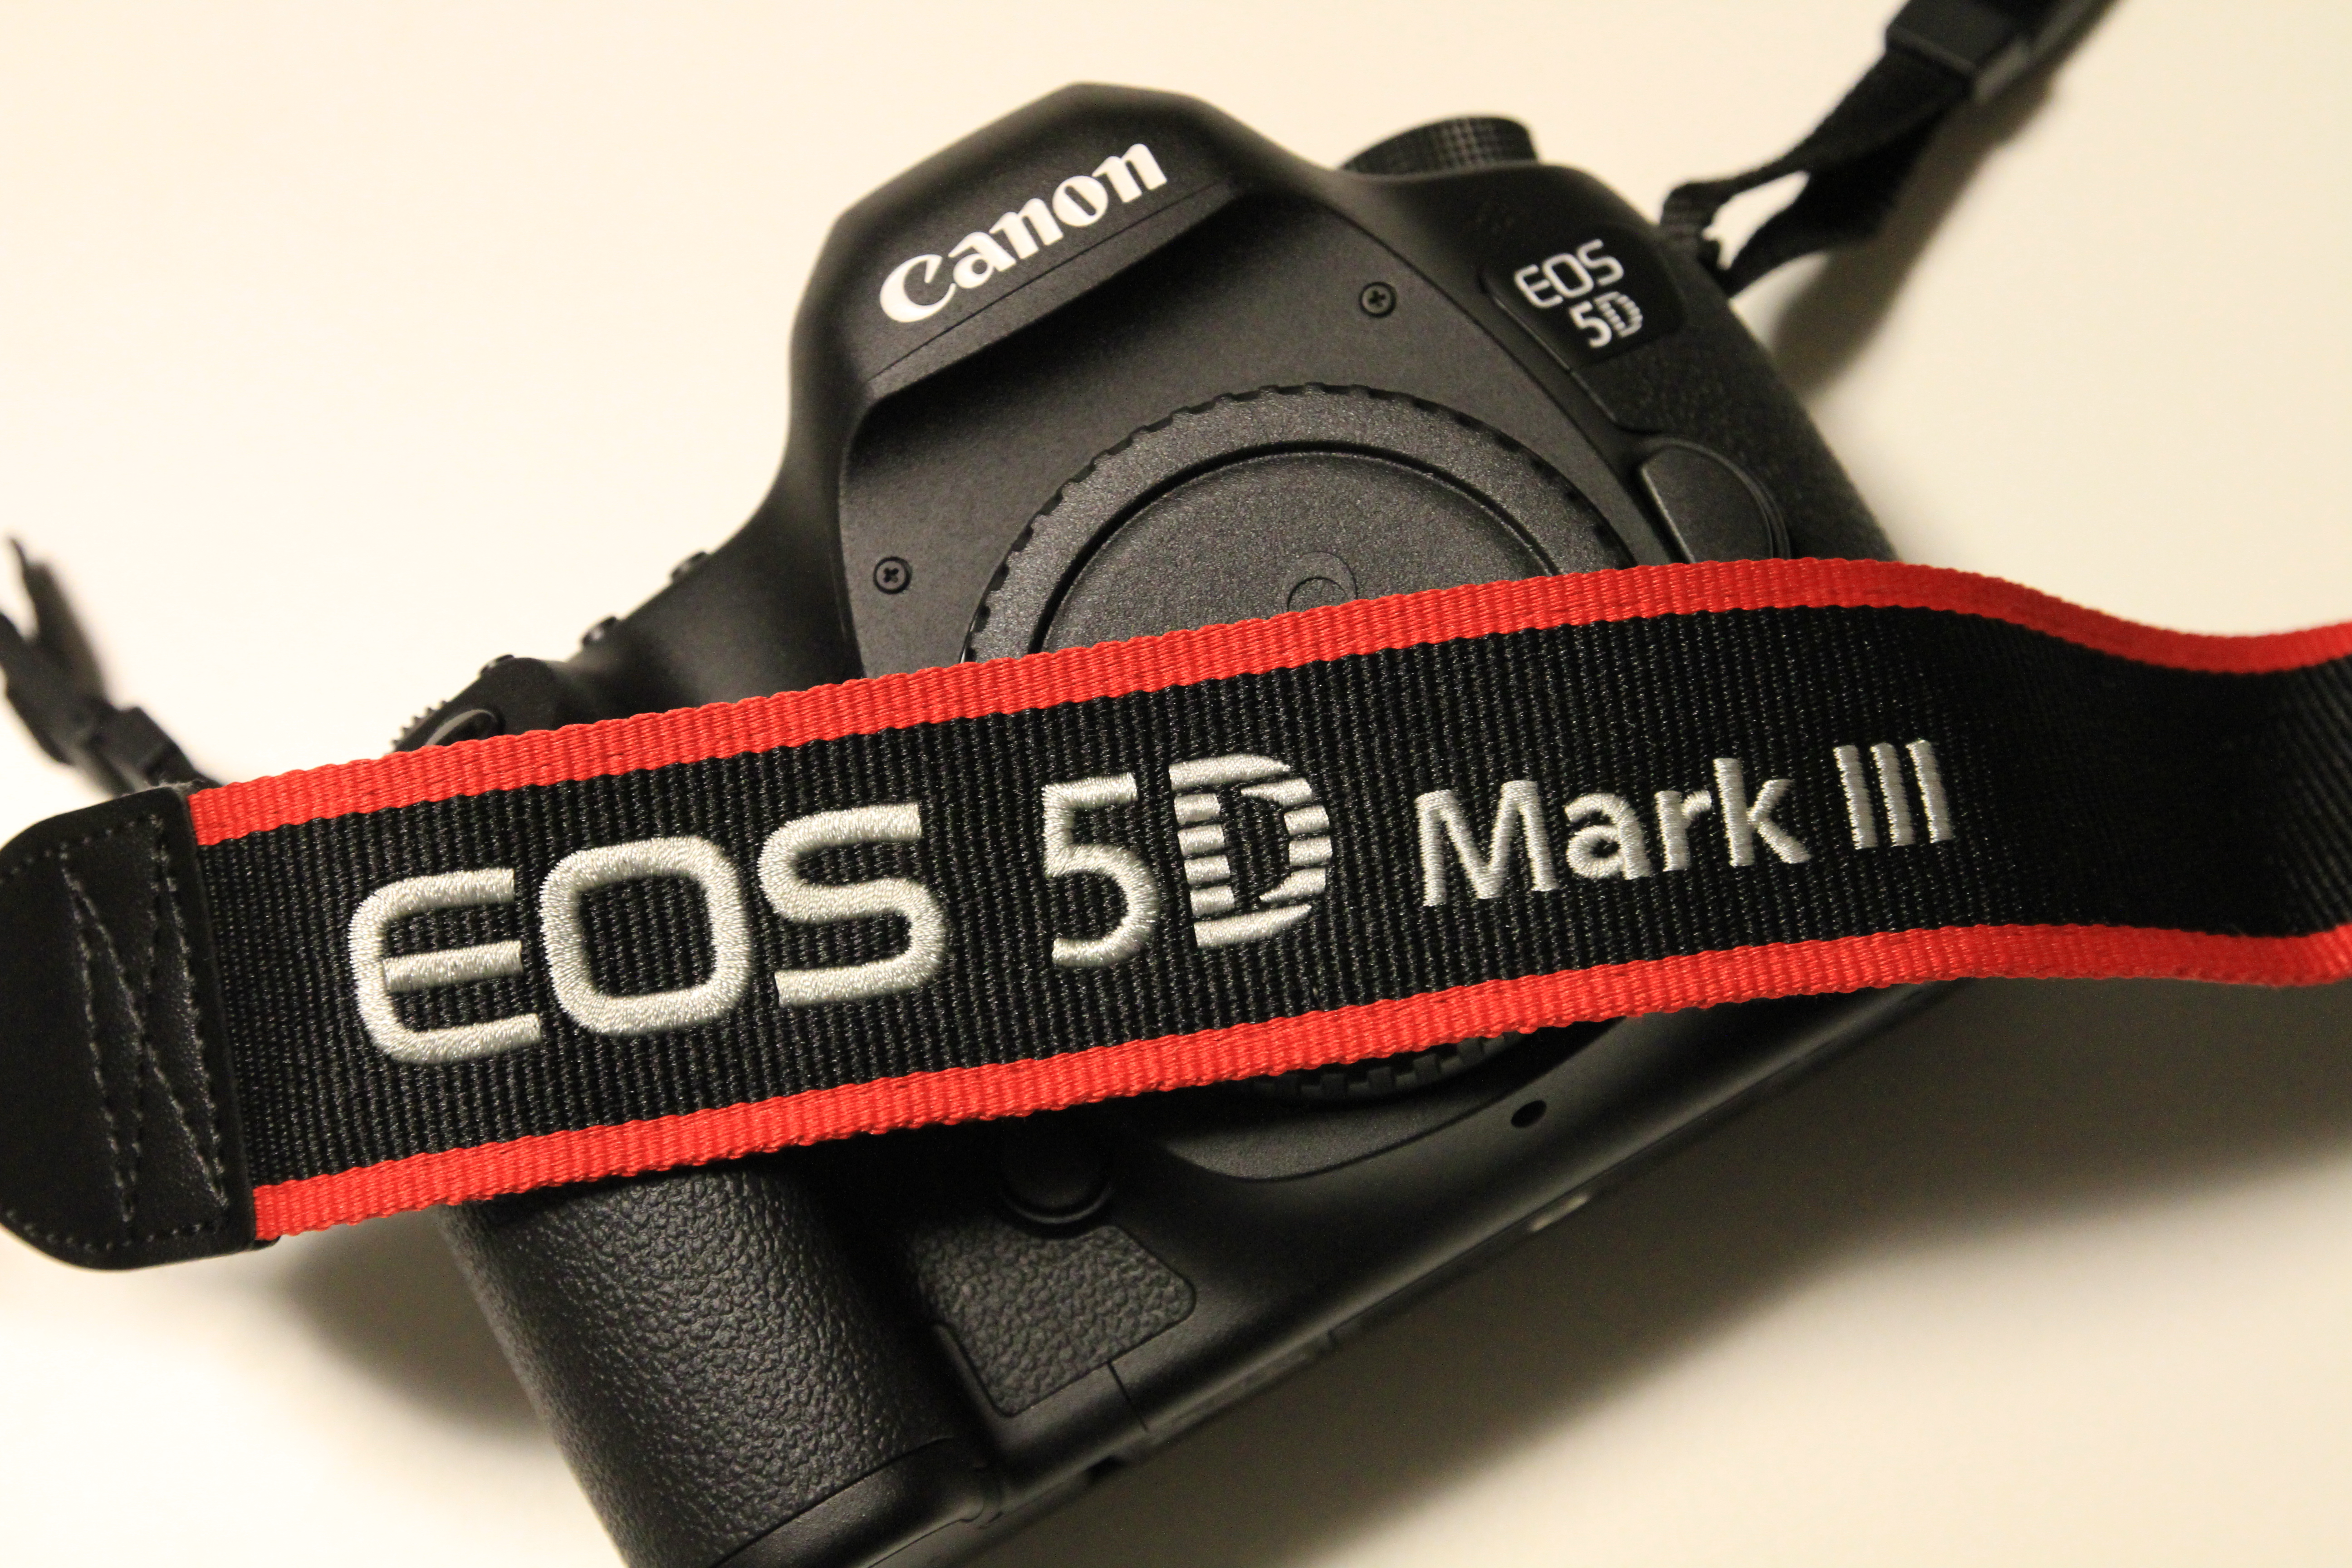 Eos 5d Mark Iii svg #1, Download drawings